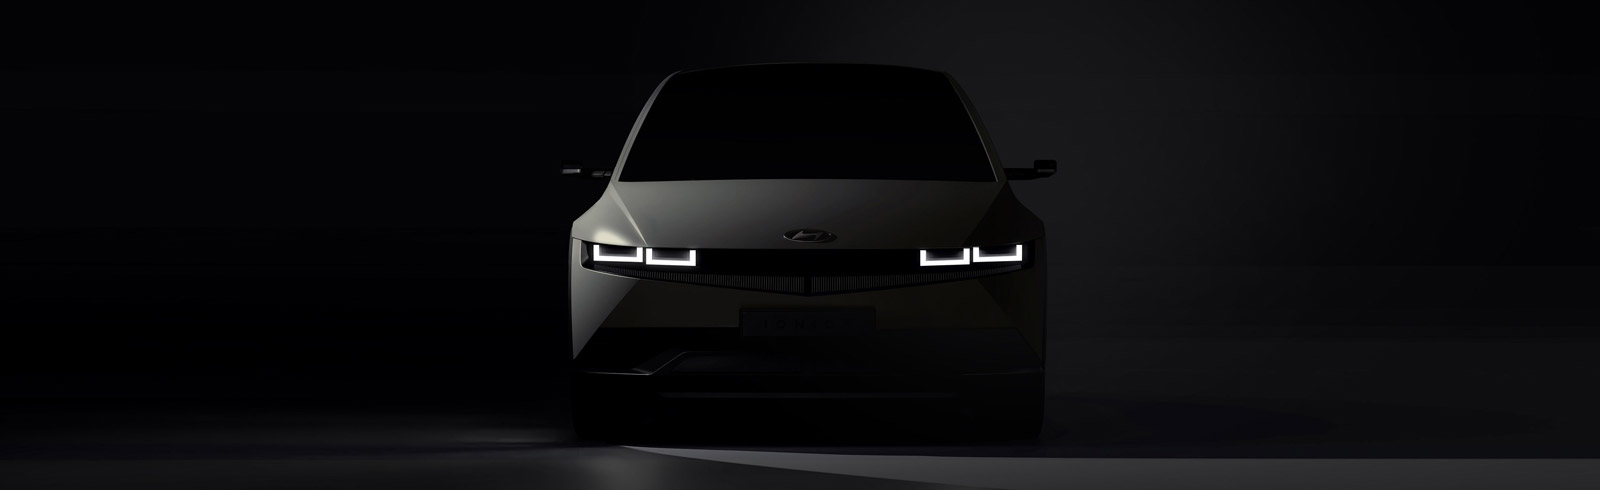 Hyundai IONIQ 5 appears on official renders and teaser videos, will debut in February 2021